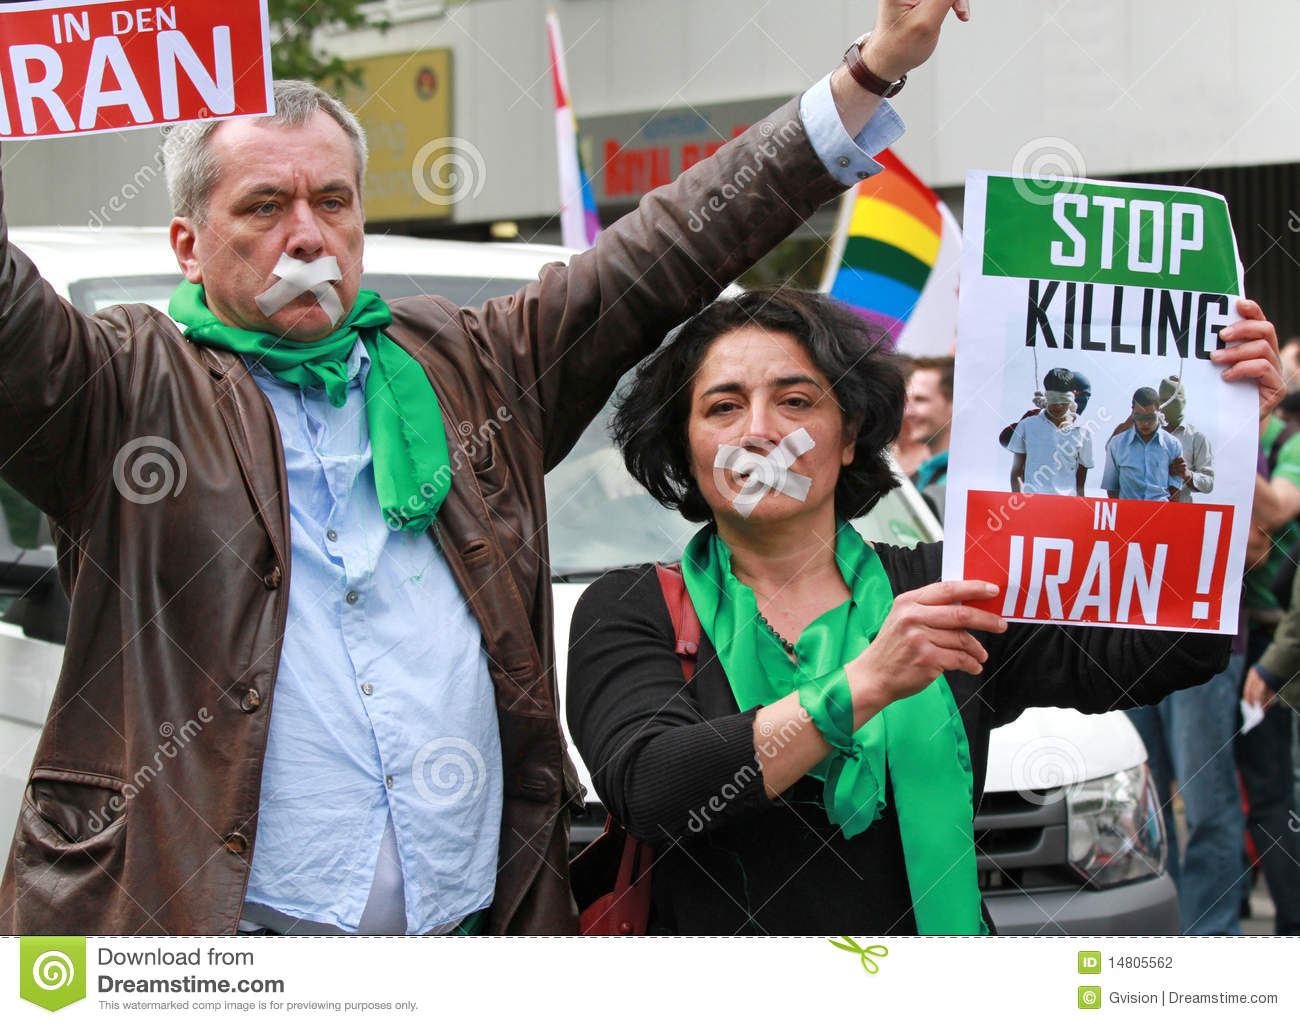 Stop the Killing in Iran protest. Political activists protesting against  the killing of gay people